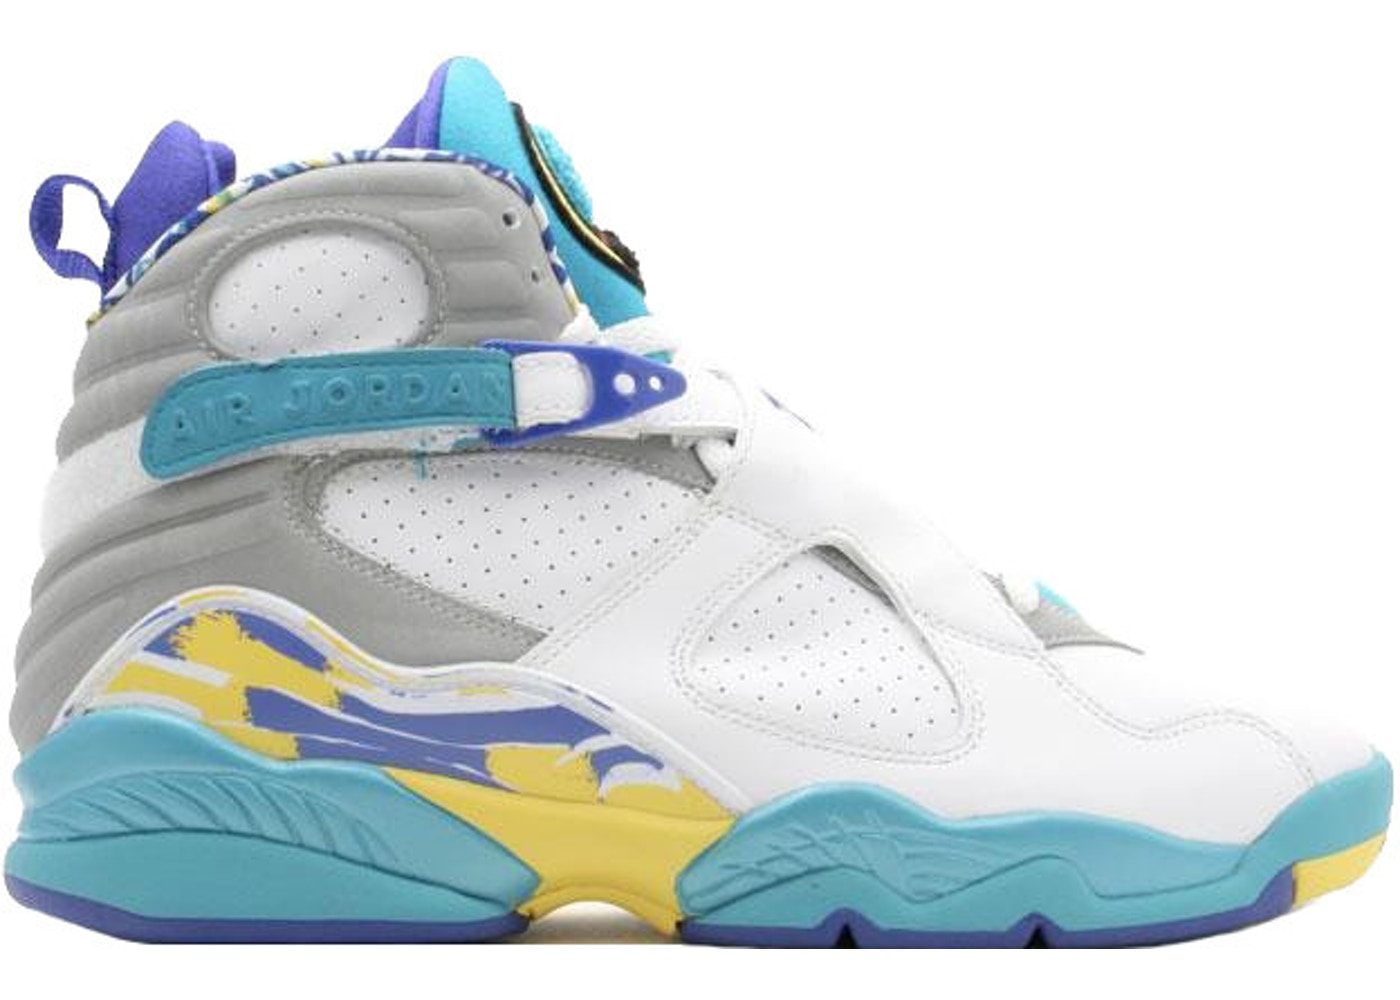 timeless design abc84 b41c8 Jordan 8 Retro Aqua (GS)